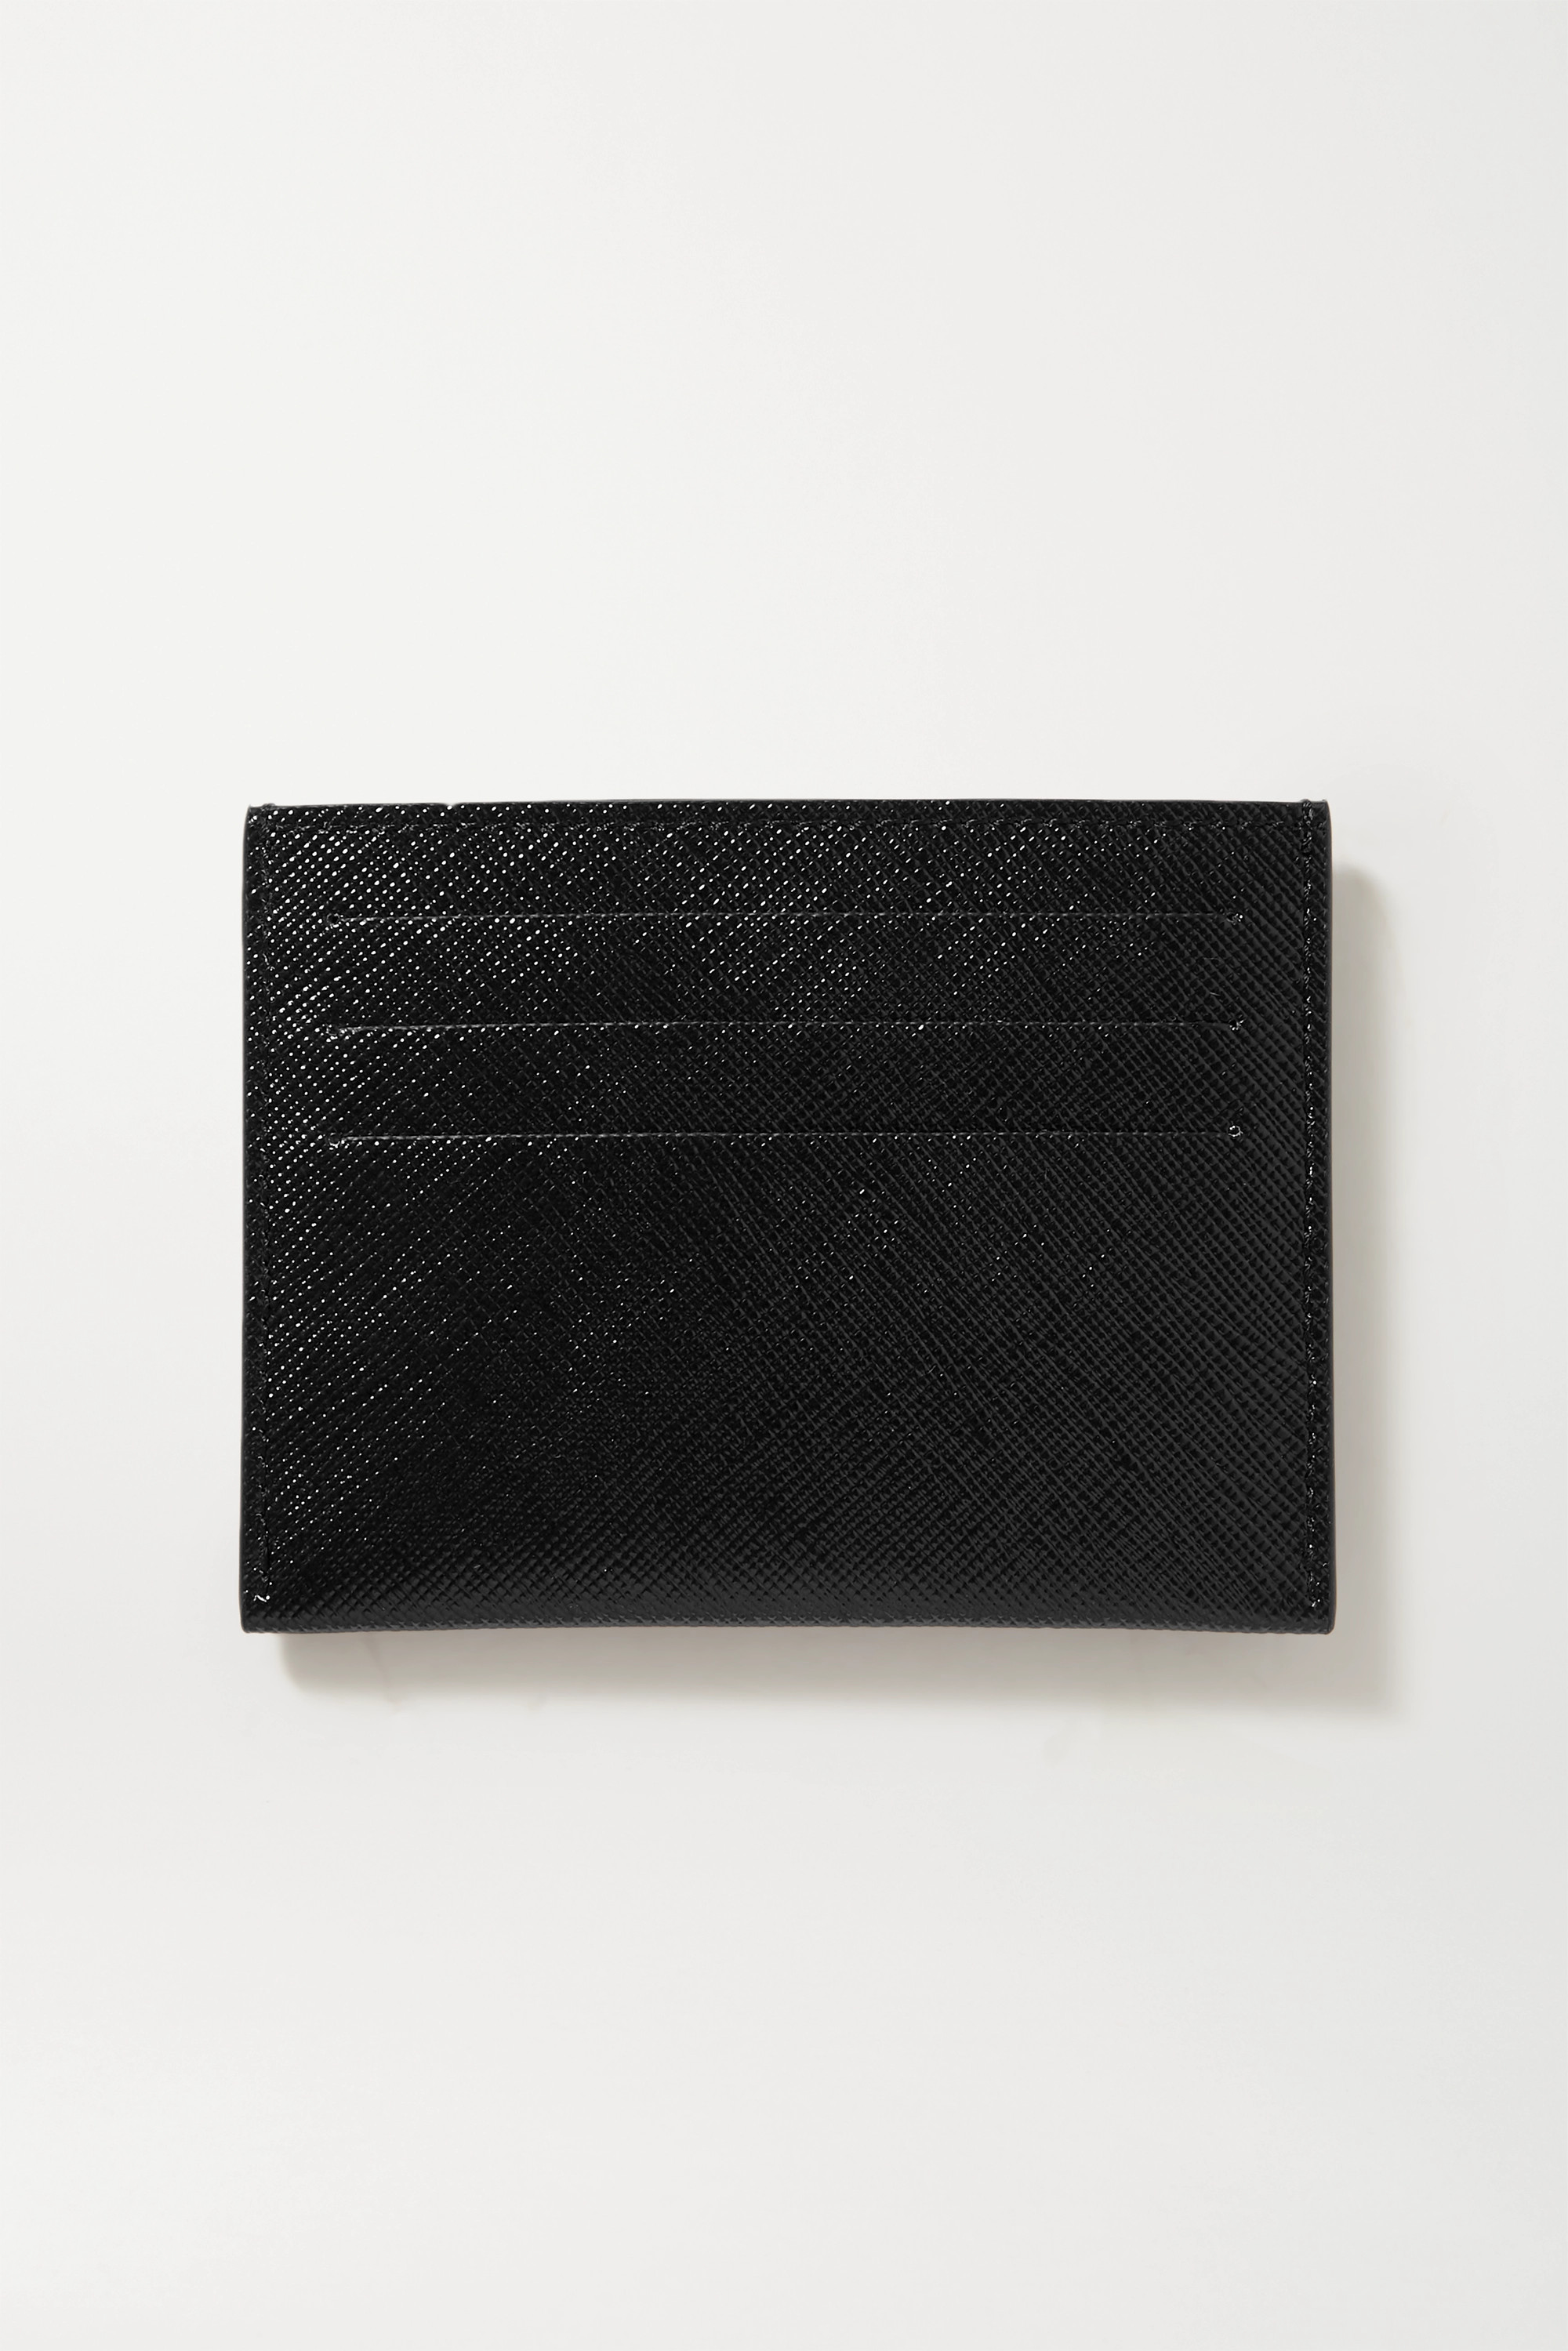 Givenchy Distressed printed coated-canvas cardholder